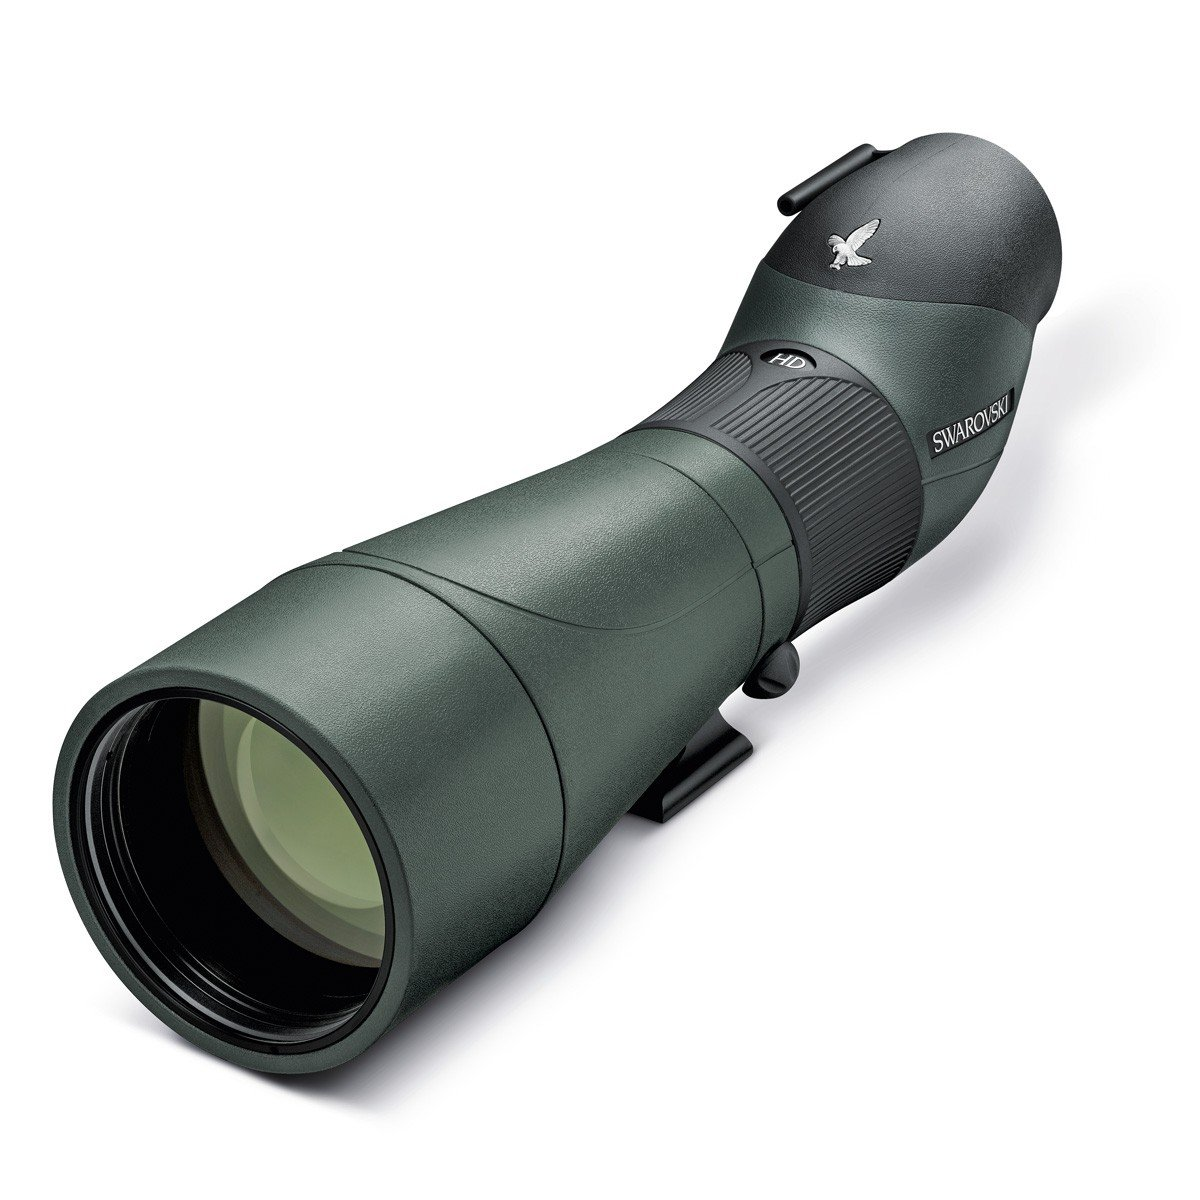 Swarovski Spotting Scope HD-STS 80 High Definition Glass(Eyepiece Required) by Swarovski Optik